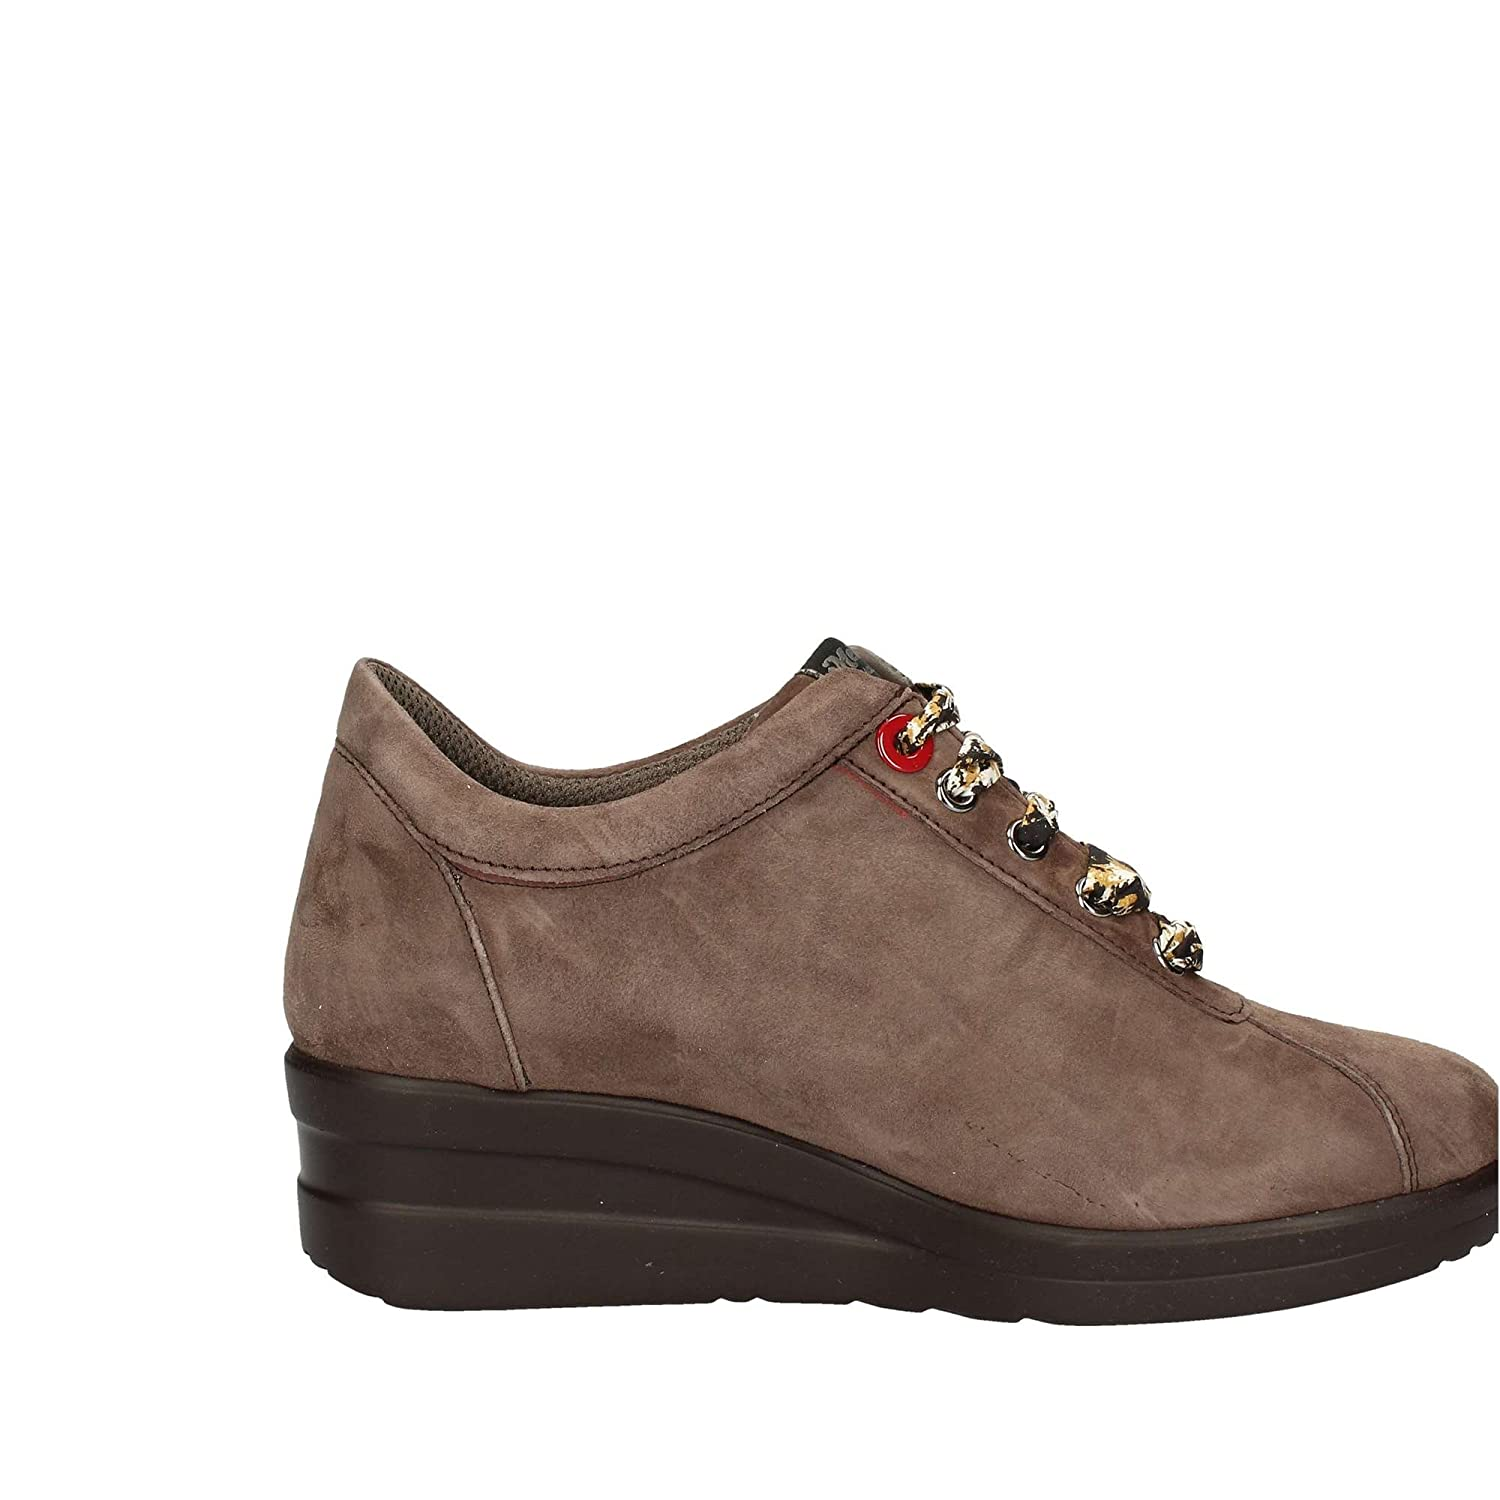 Piombo in Italy Made Zeppa Donna MELLUSO Pelle Sneaker R25802 Scarpa aw7ZT5xHq